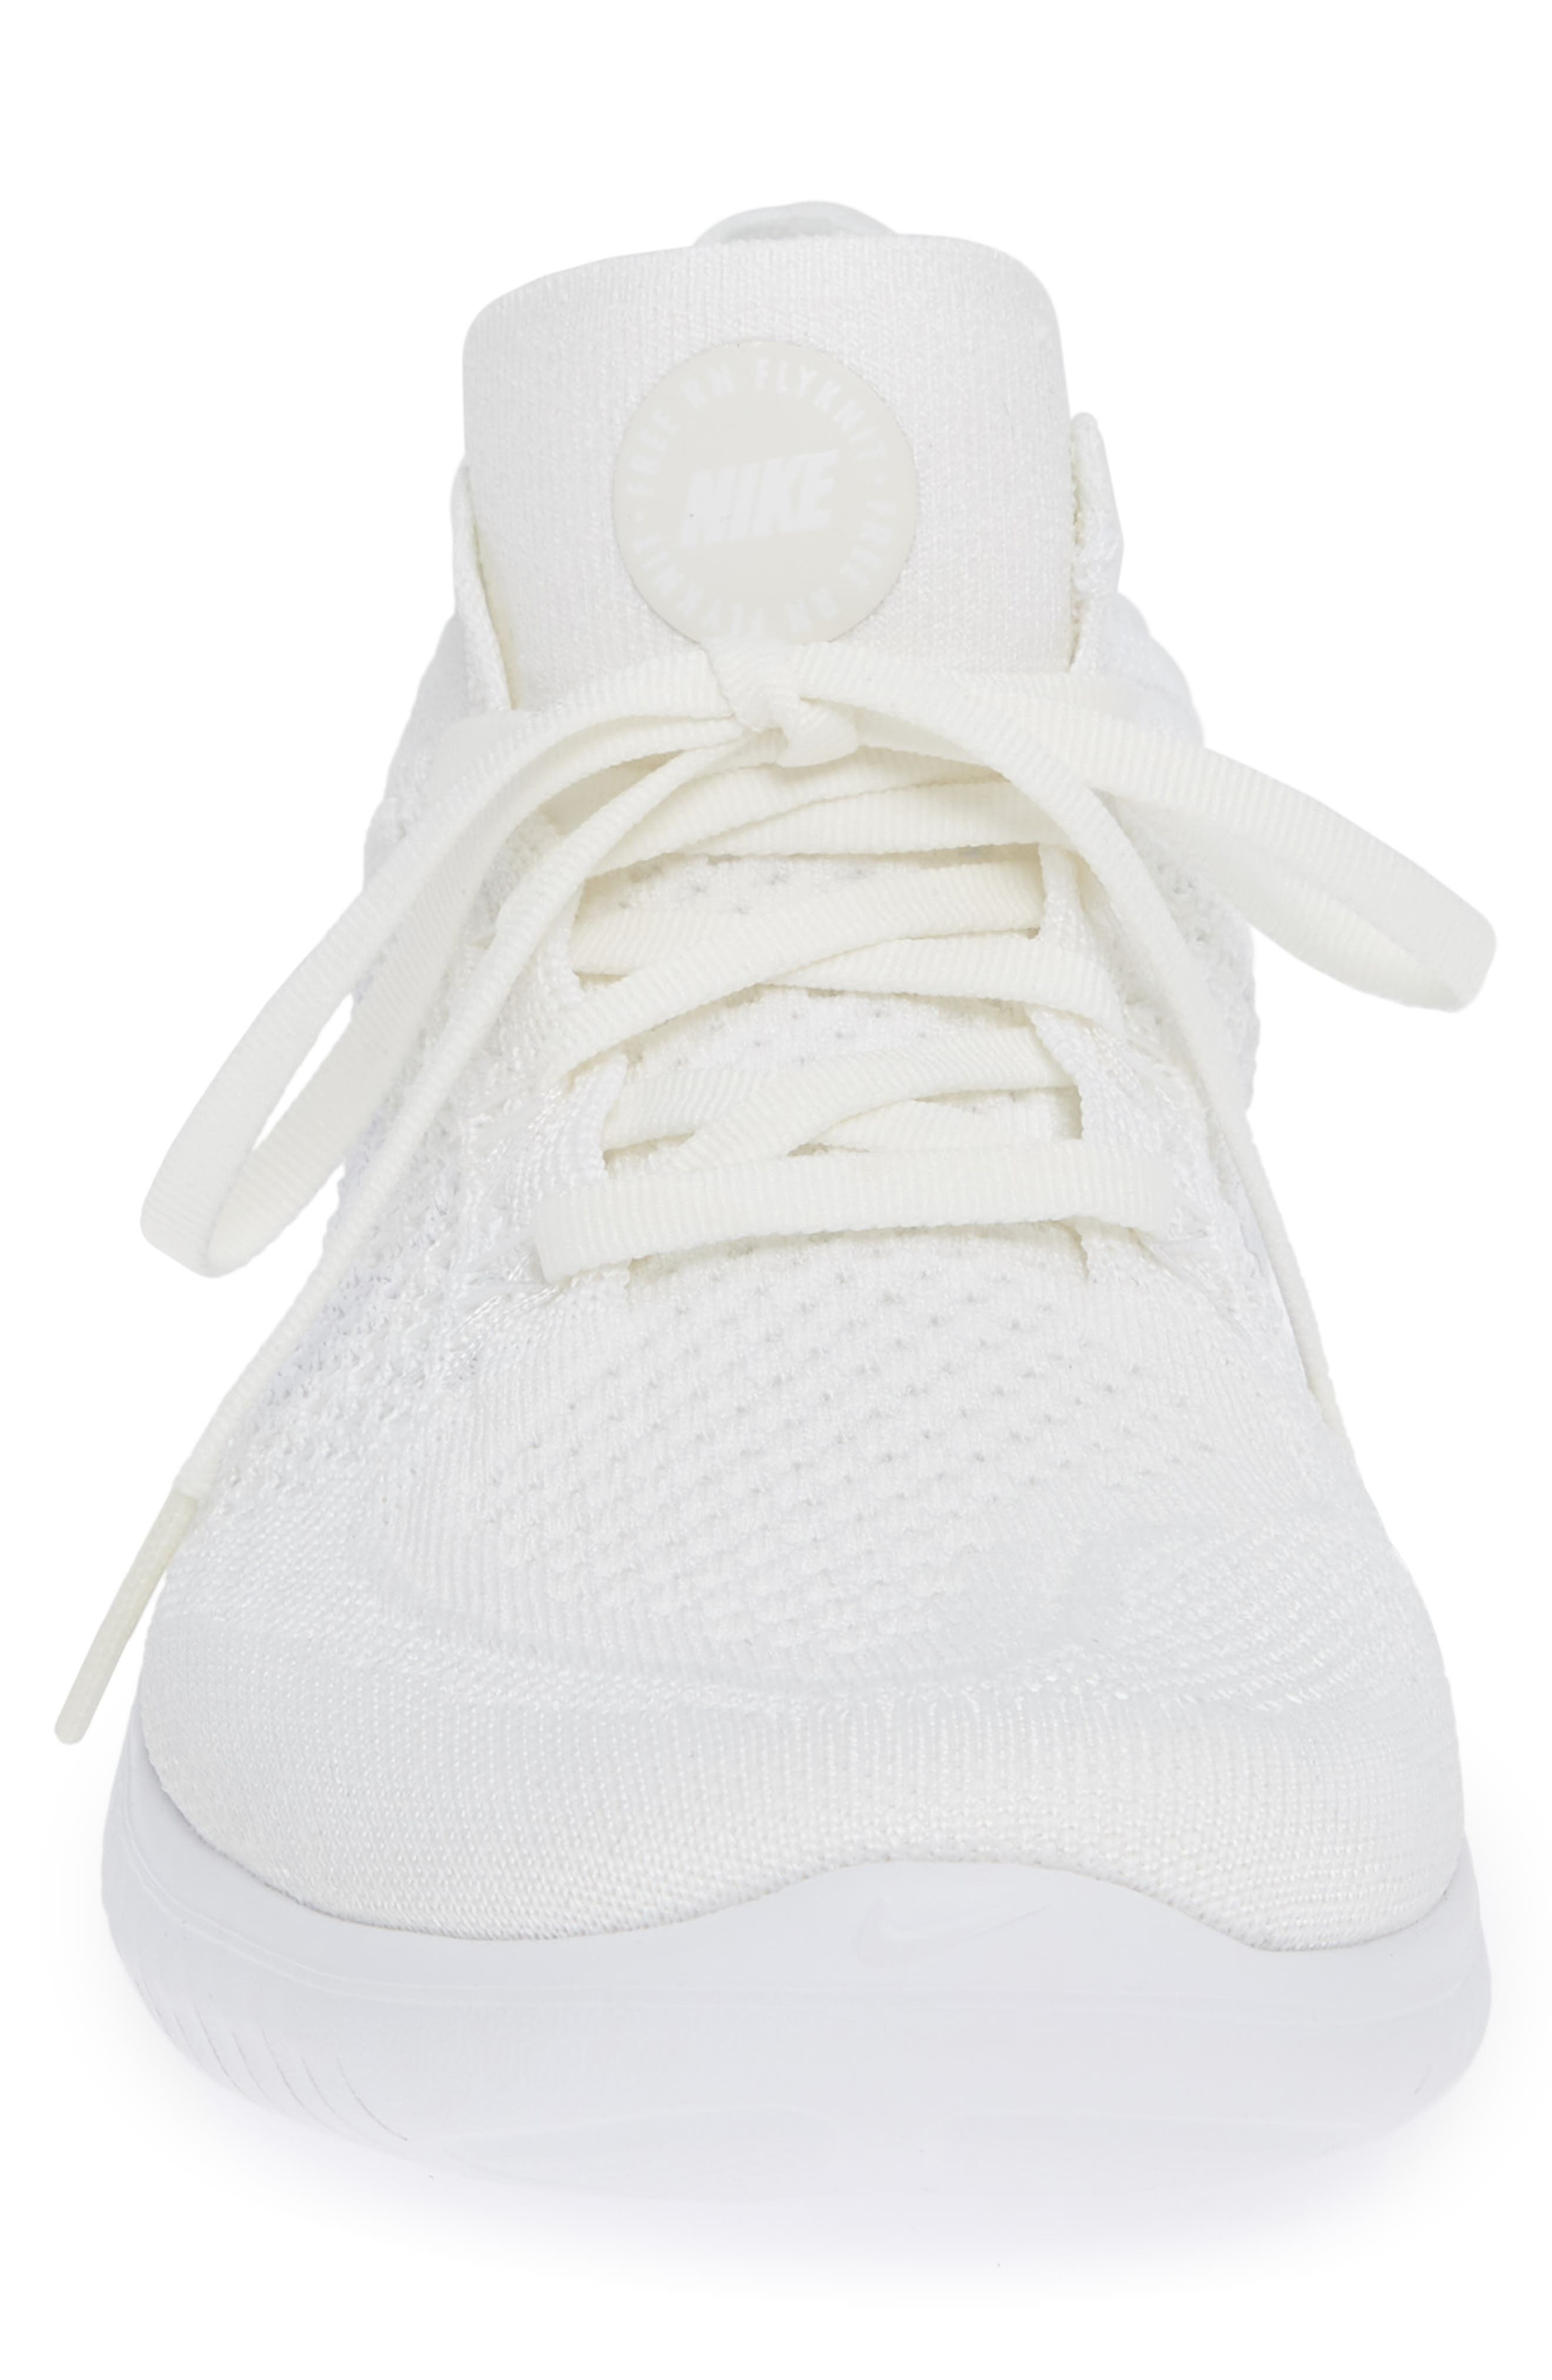 NIKE,                             Free RN Flyknit 2018 Running Shoe,                             Alternate thumbnail 4, color,                             WHITE/ WHITE